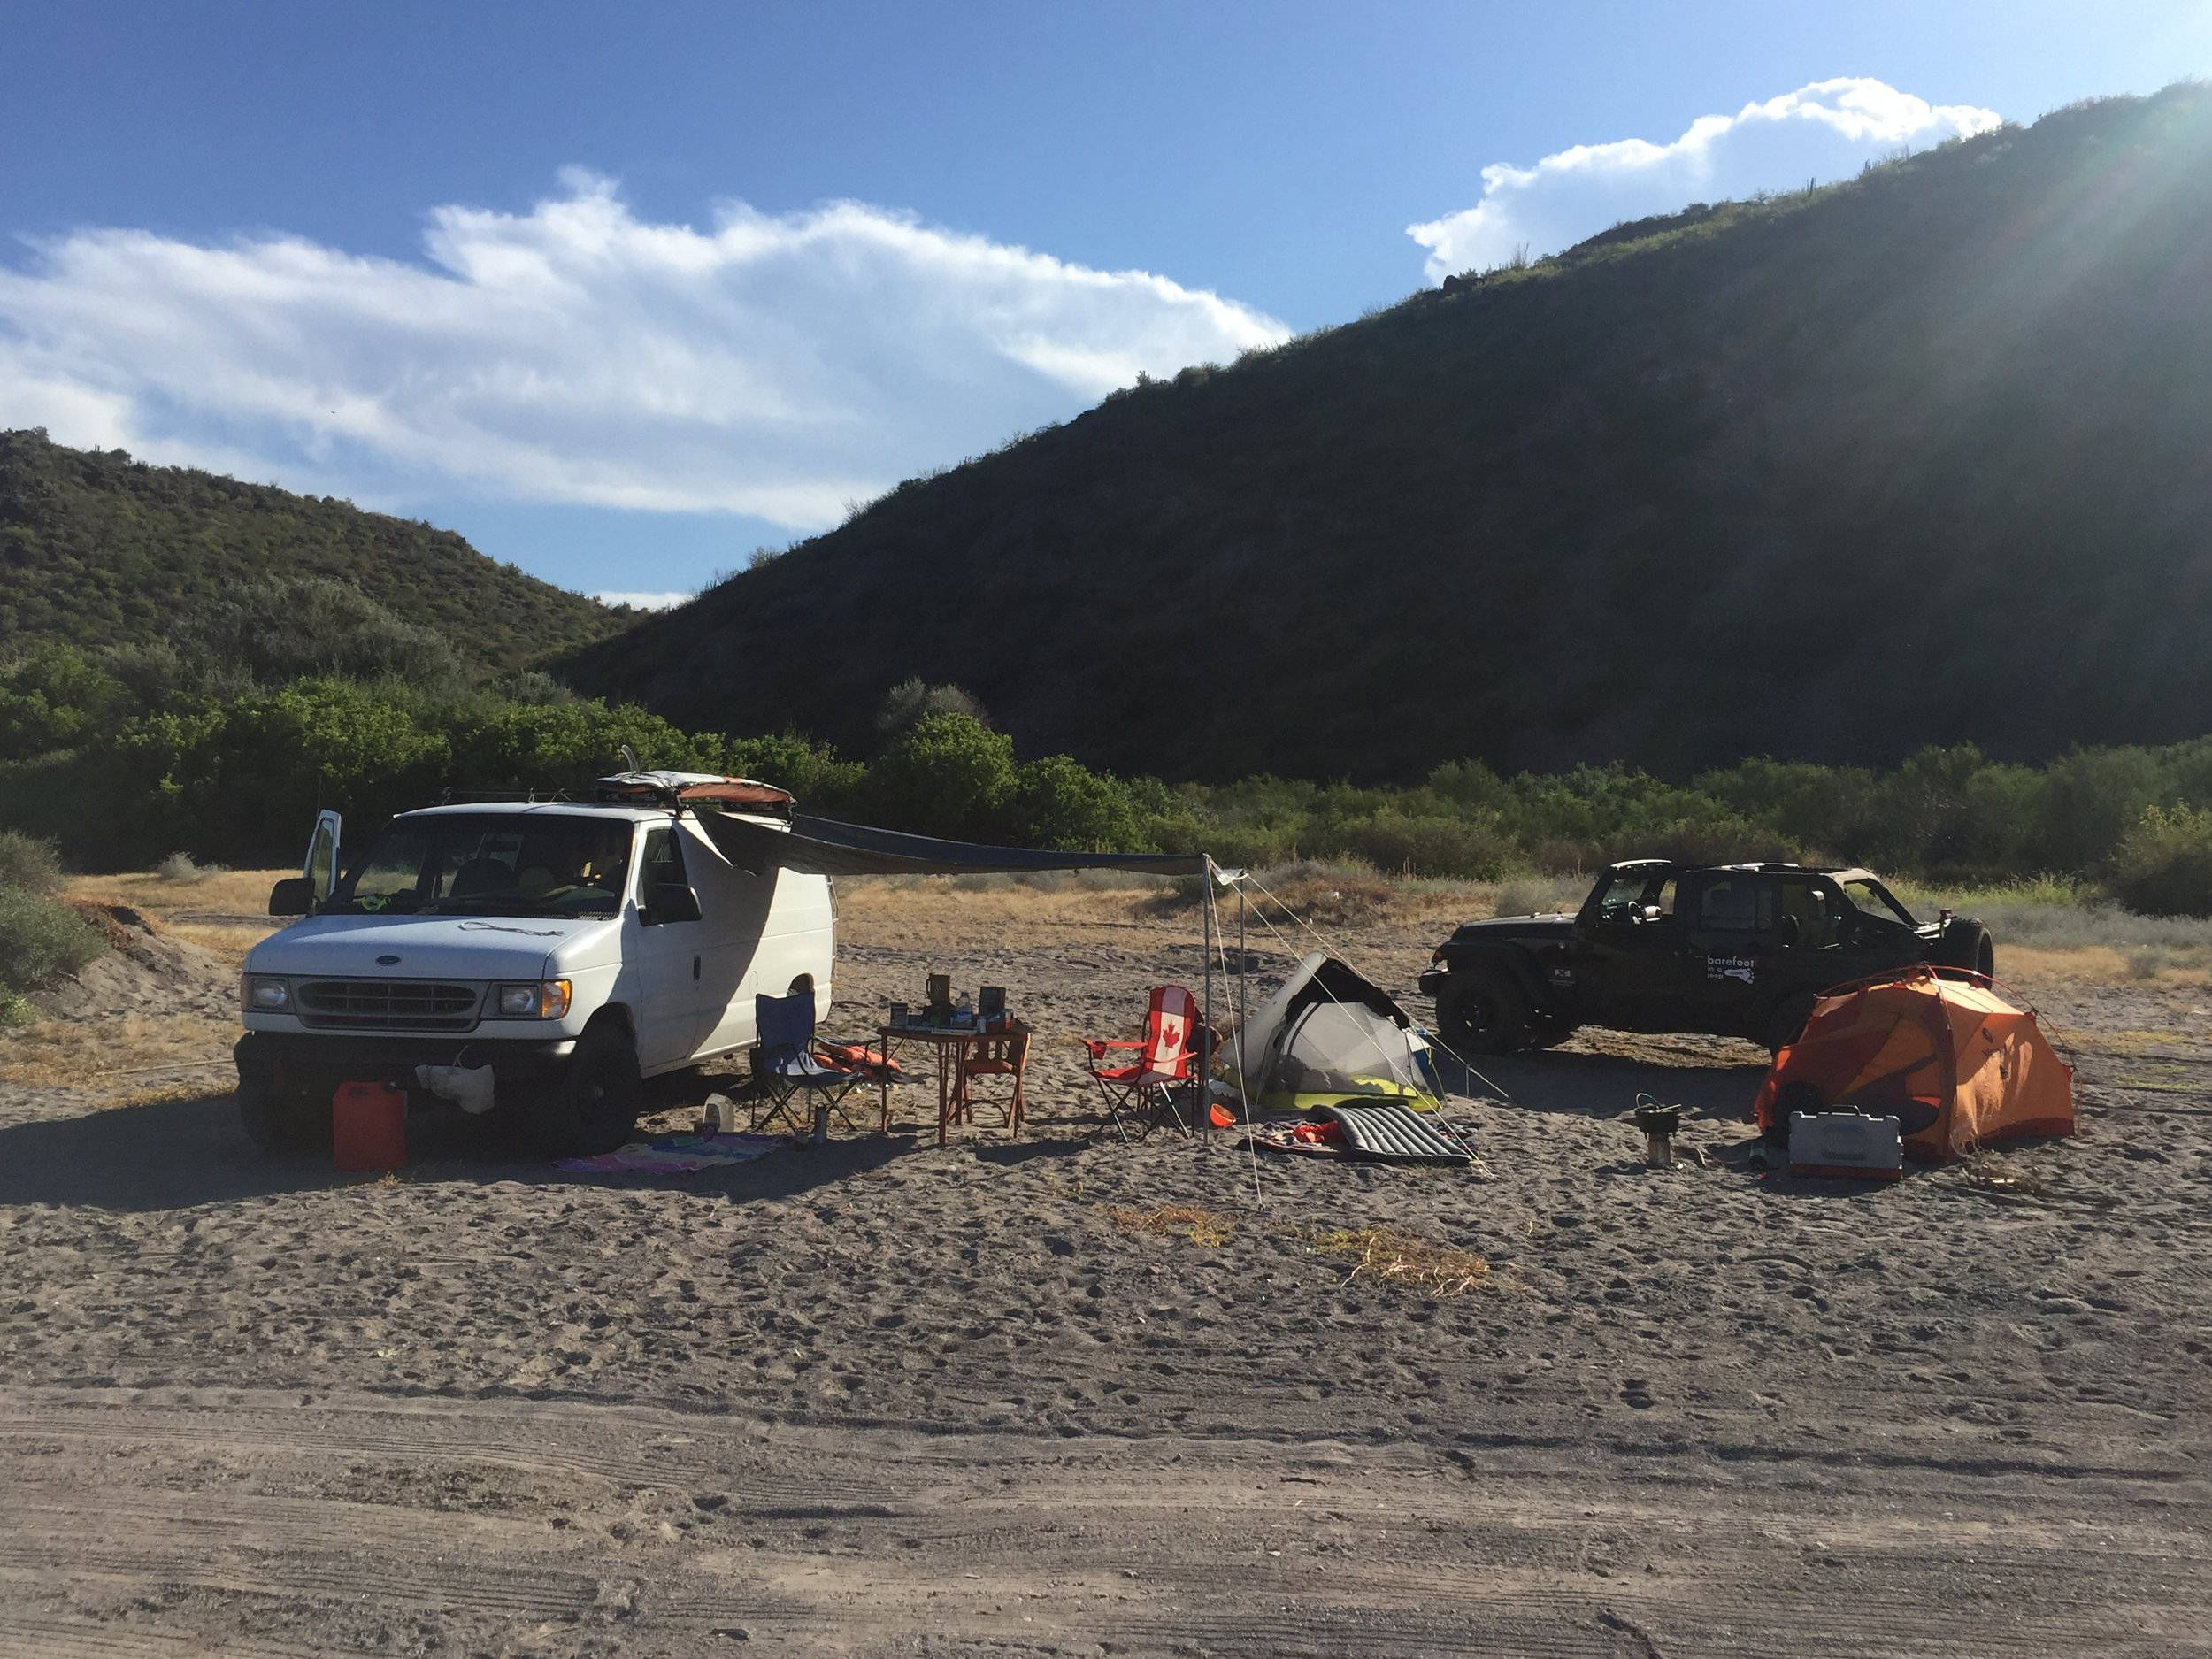 Camping with some other overlander in Baja California.